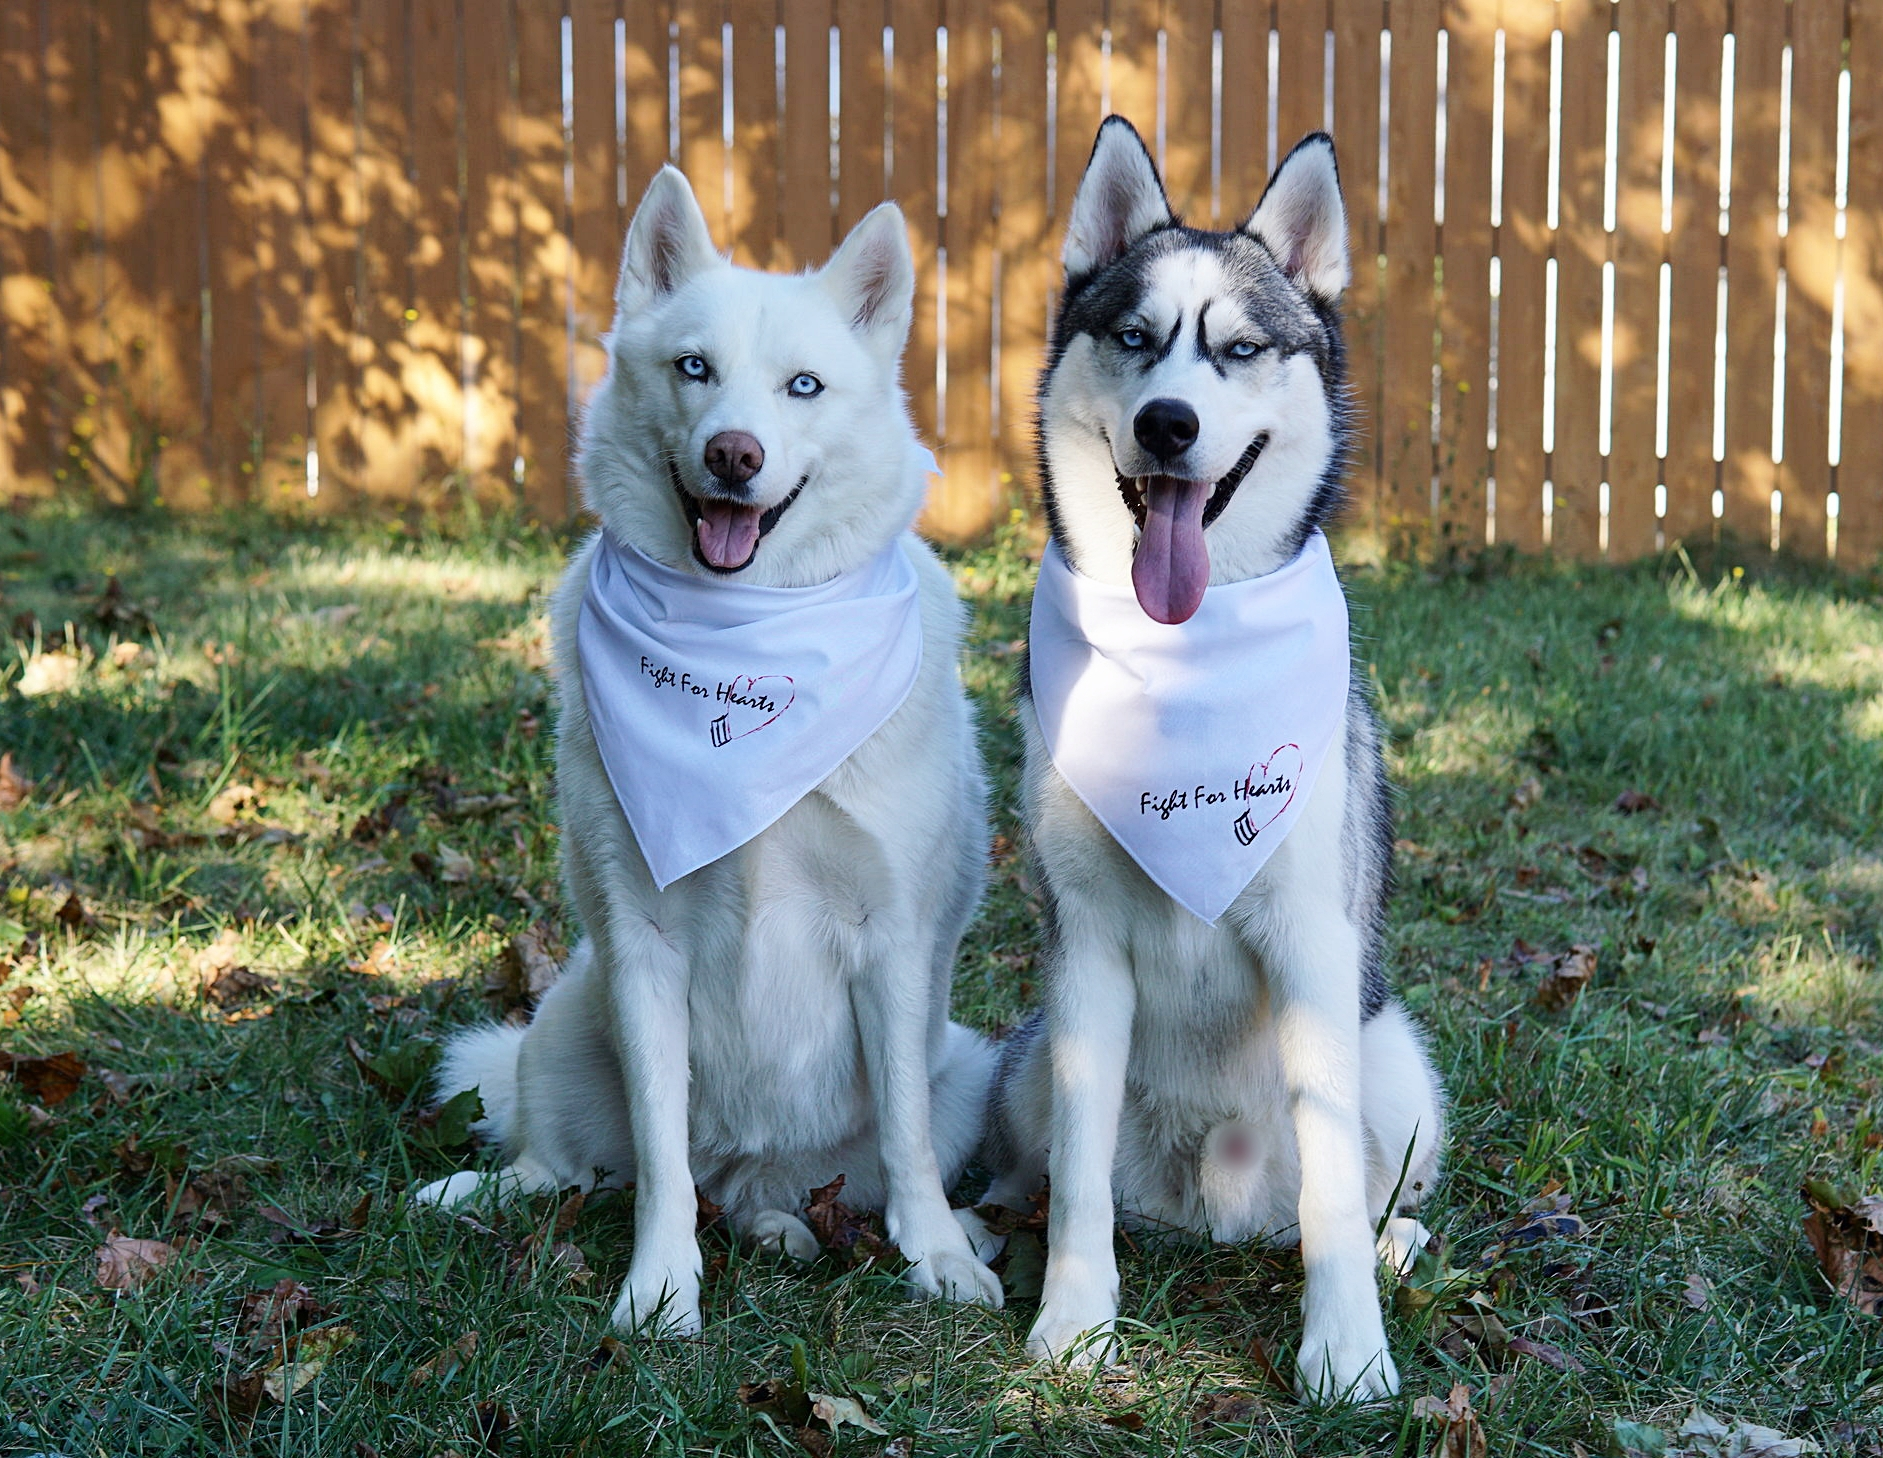 Zana  is a 6 year old, (white coat/blue eyes)female Siberian Husky who loves interval training, and cross-country running (in the wilderness). Zana loves eating bananas. Zana has been diagnosed with Lyme Disease, which has slowed her down, but she doesn't let that obstacle limit her activity and diet. Zana is very gentle and great with kids!   Pablo  is a 9 month old male Siberian Husky.He is extremely energetic, and as his fitness trainers we often have to hold him back (more is not always better). Pablo loves pulling sleds (not a fan of pushing sleds), loves celery, and is a big fan of jumping progressions (usually uses the couch instead of a plyo. box). Pablo is also great with kids.